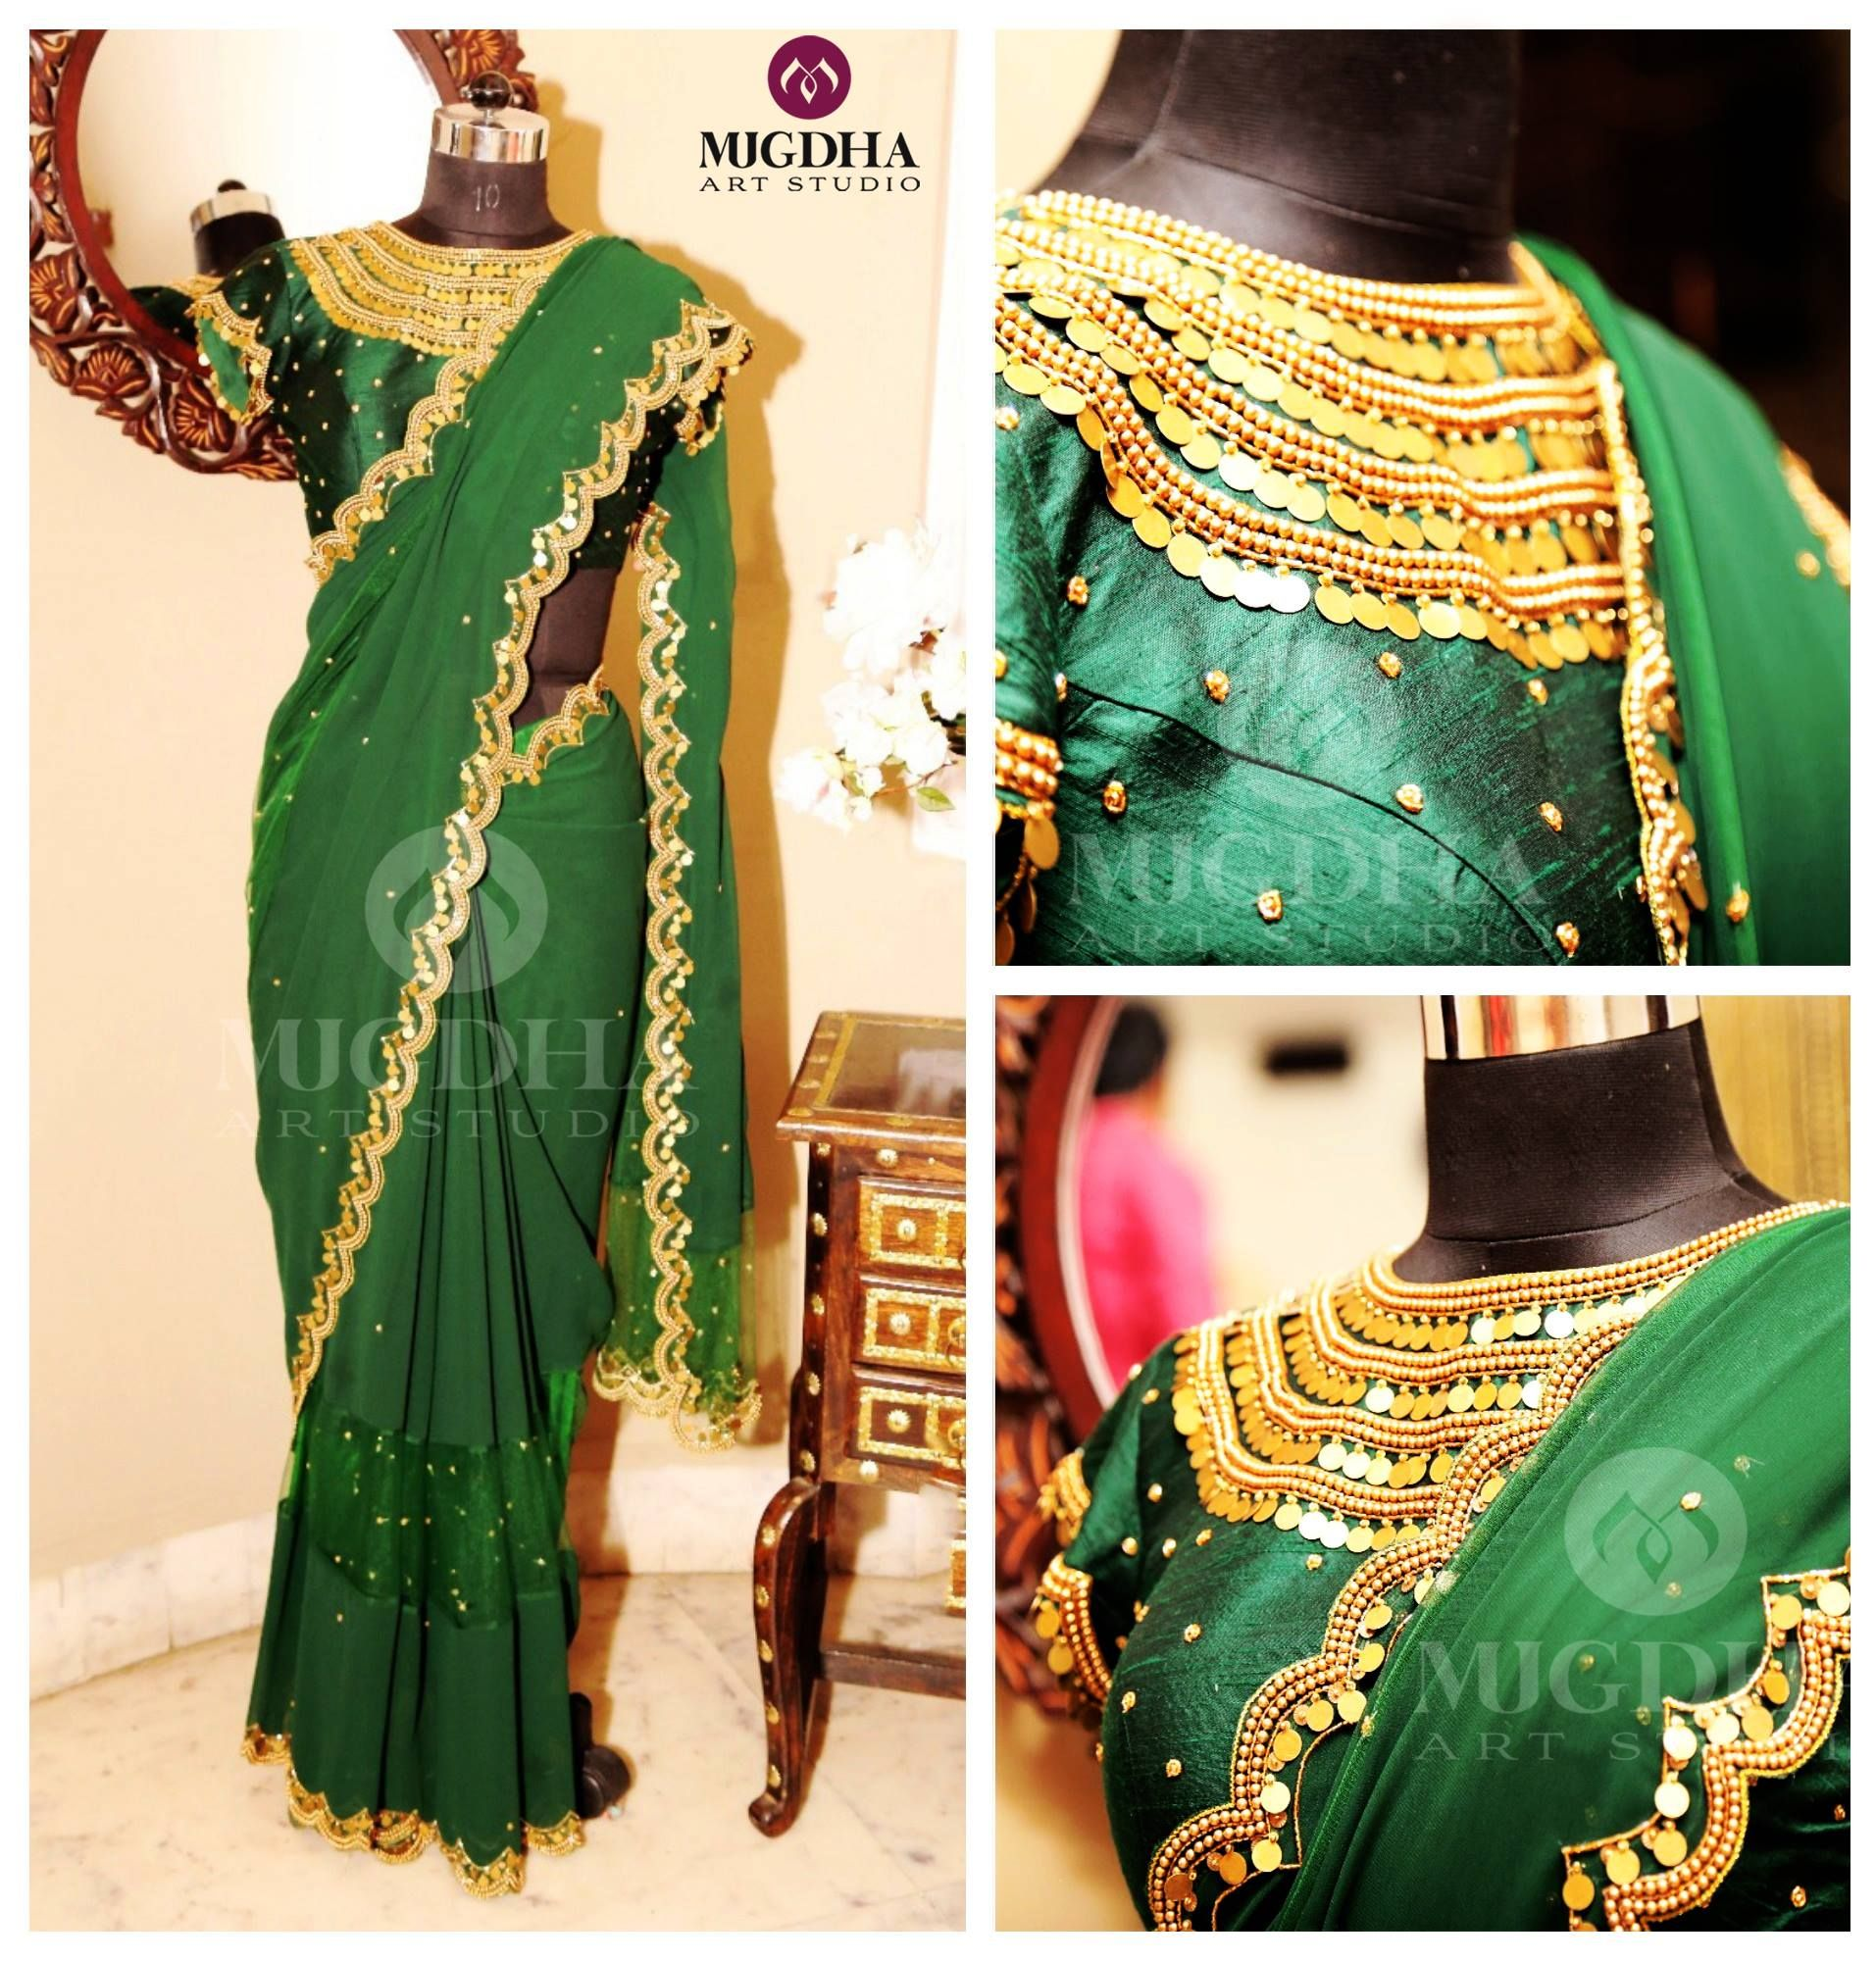 Creative Hand Made Embroidery and Beautiful saree lovely color From the House of Mugdha Art Studio . Beautiful green color saree and designer blouse with kasula hand embroidery work. <br>  They can customize the color and size as per your requirement.